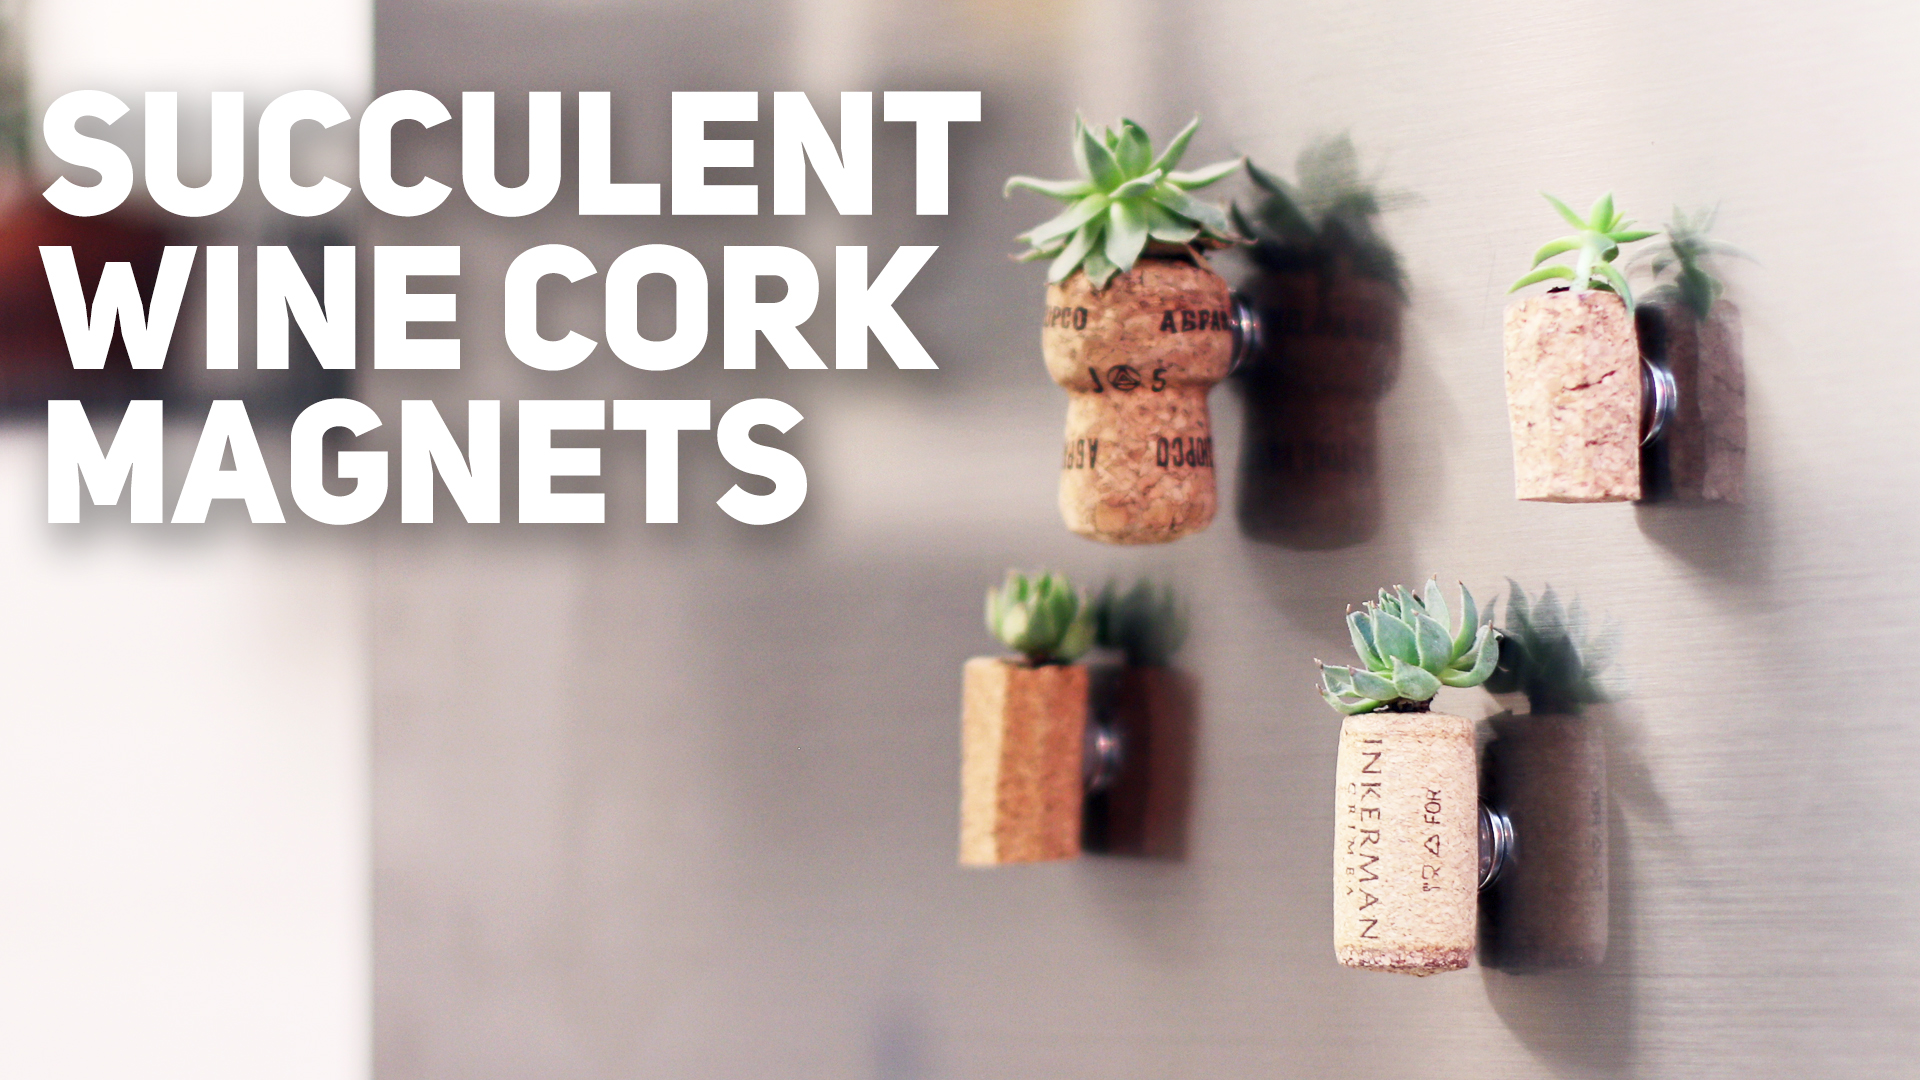 Picture of Cork Magnets With Succulent